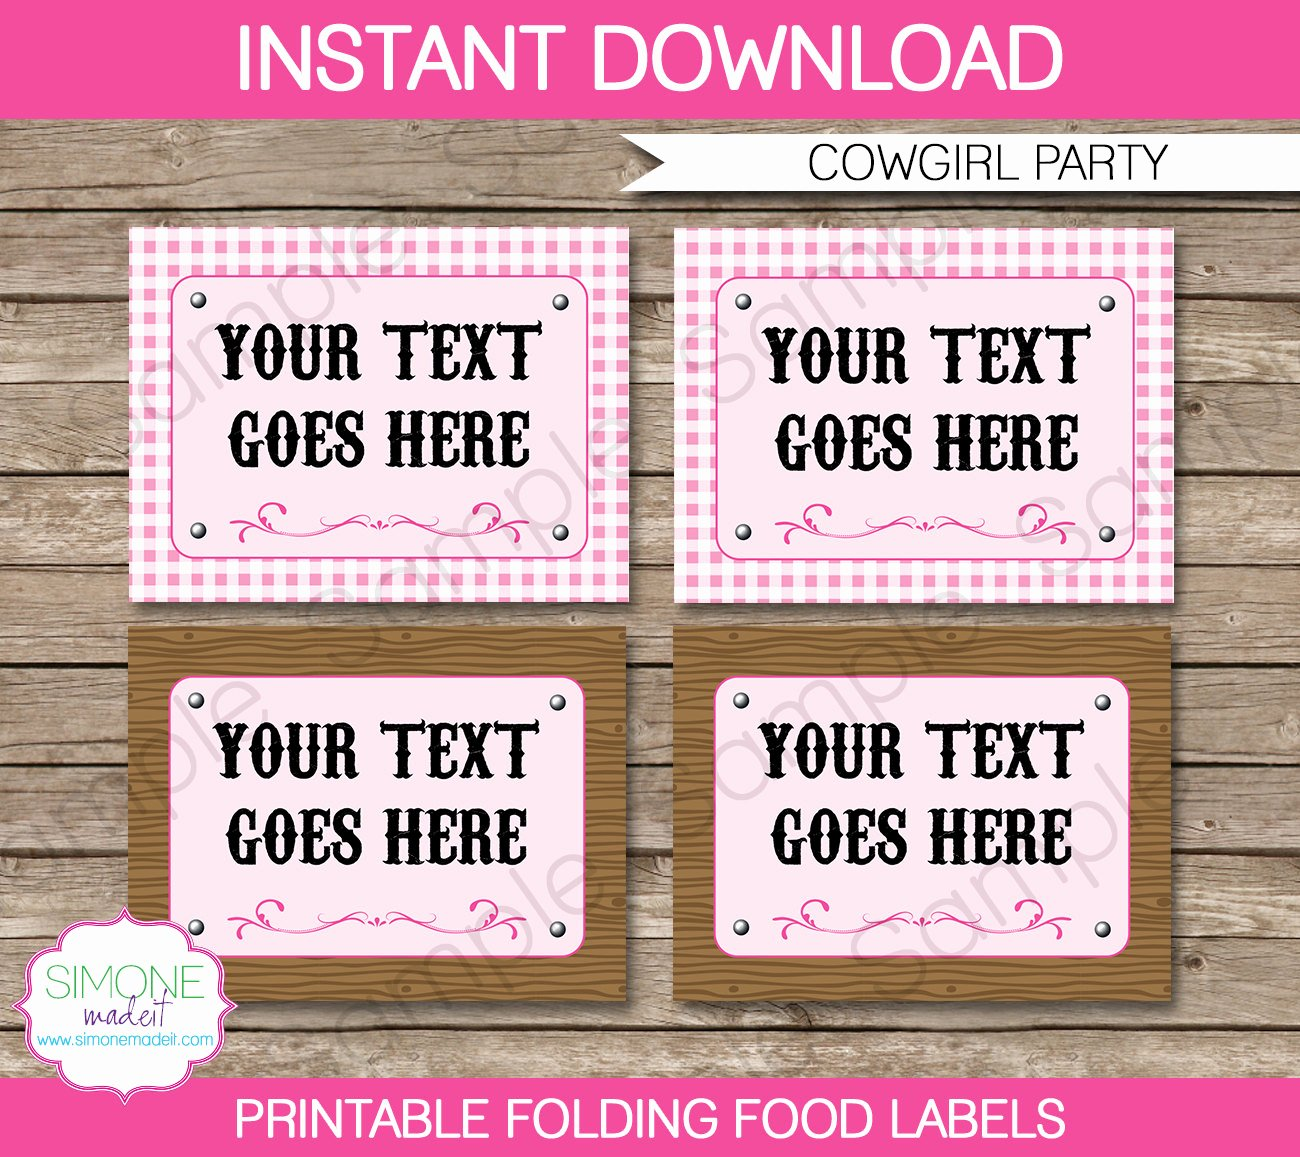 Cowgirl Food Labels Buffet Tags Tent Cards by Simonemadeit